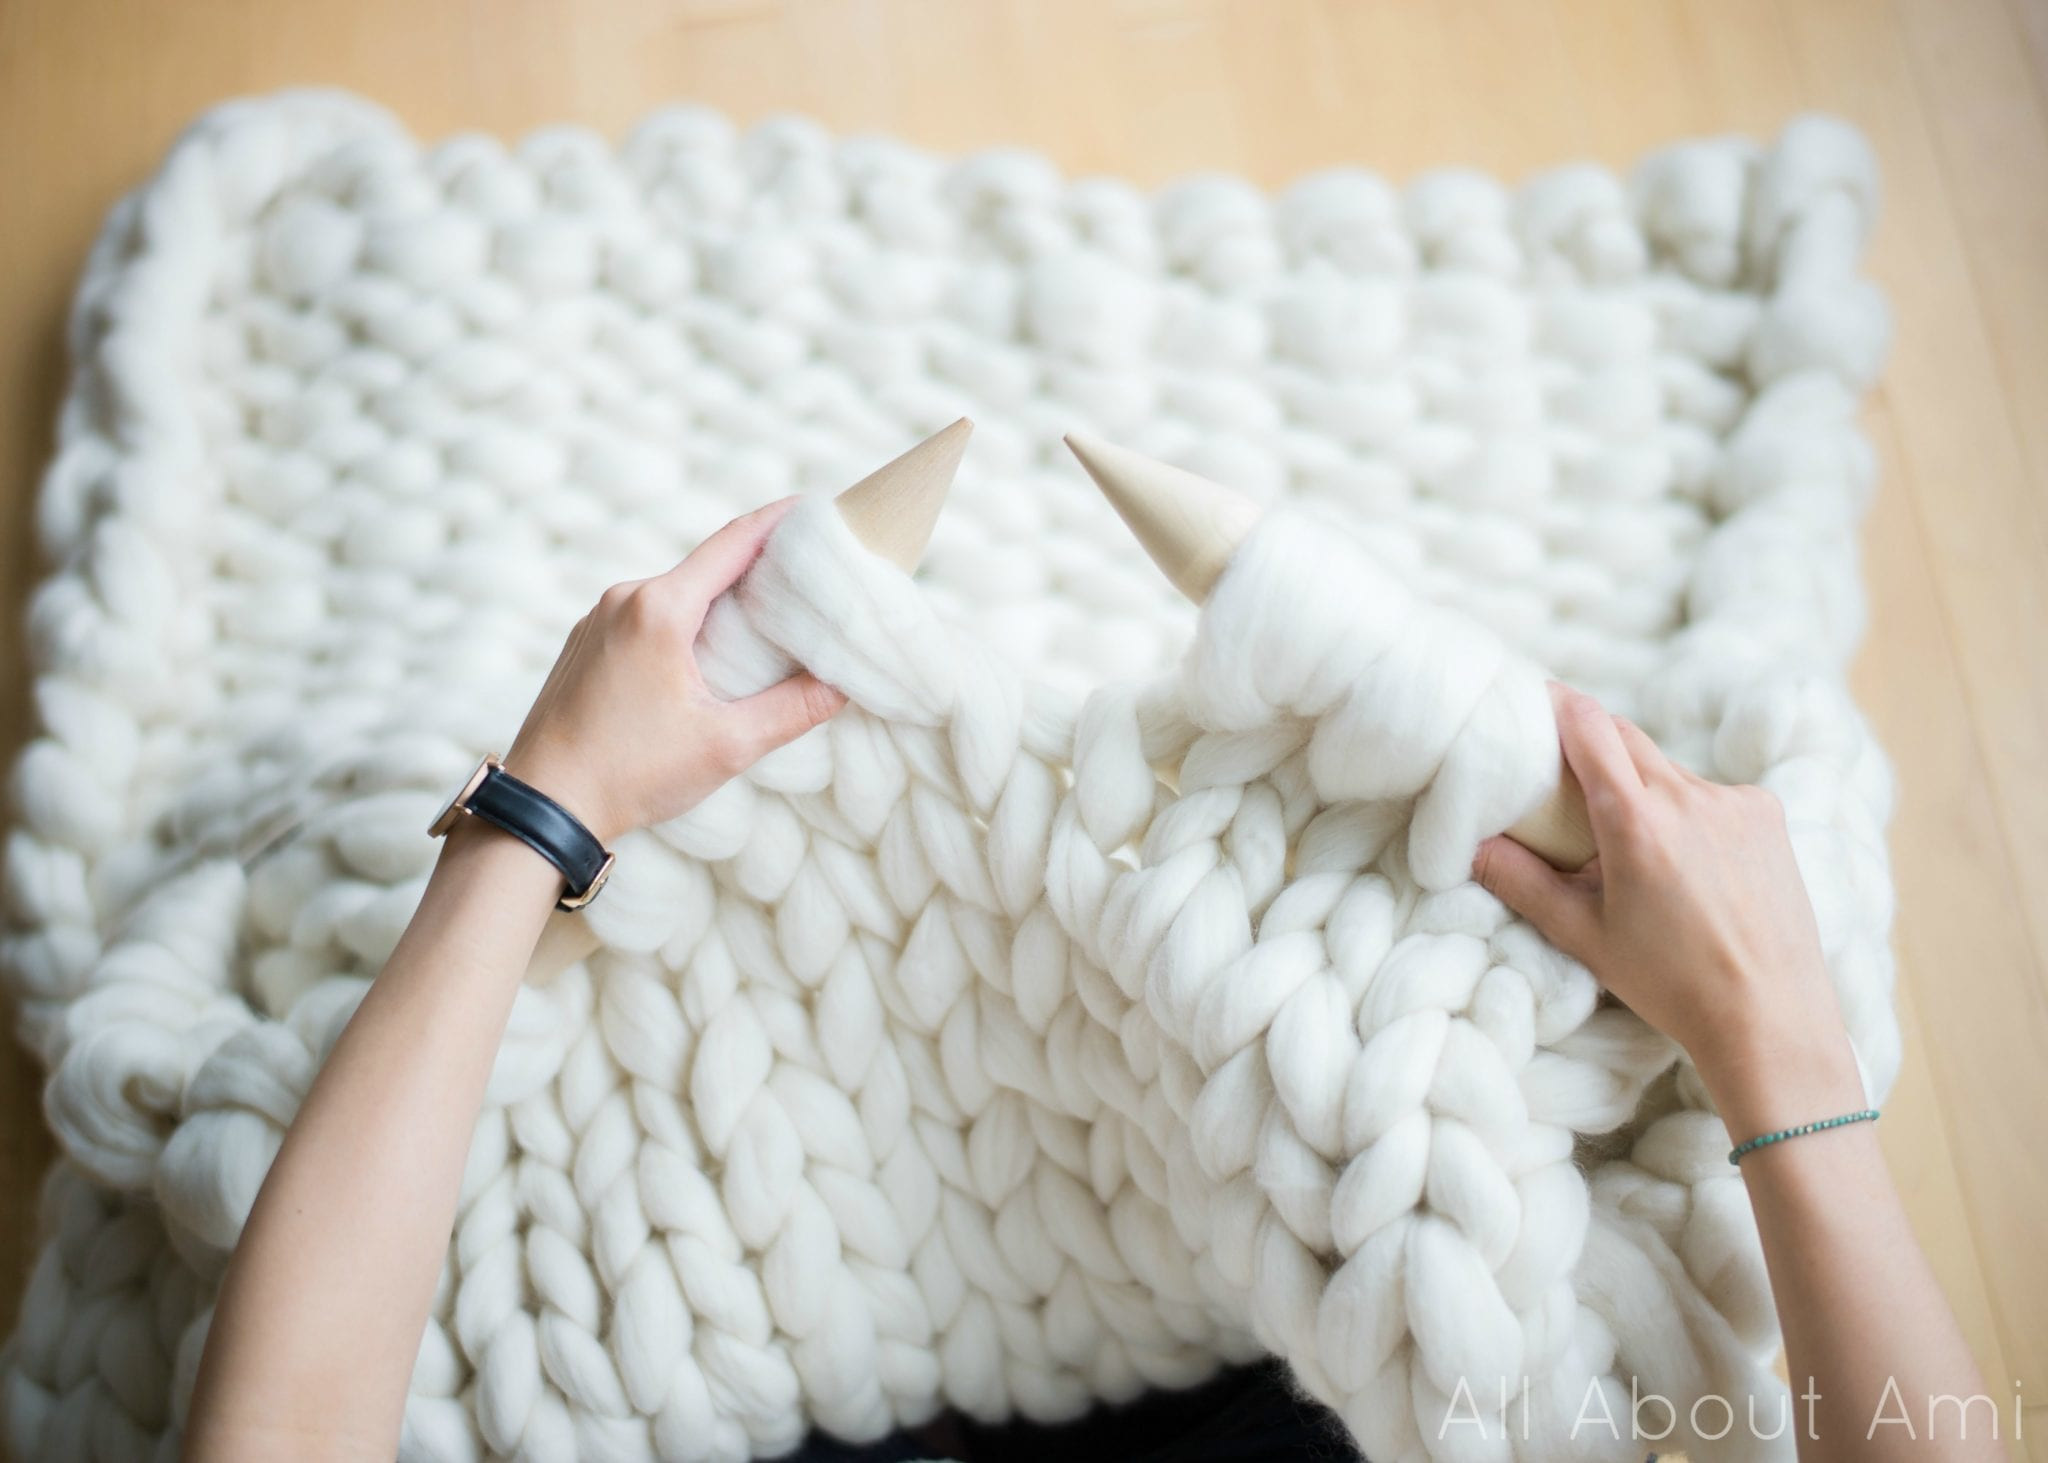 Big Knit Blanket Inspirational Extreme Knitted Blanket All About Ami Of Big Knit Blanket Lovely Chunky Knit Blanket Pattern